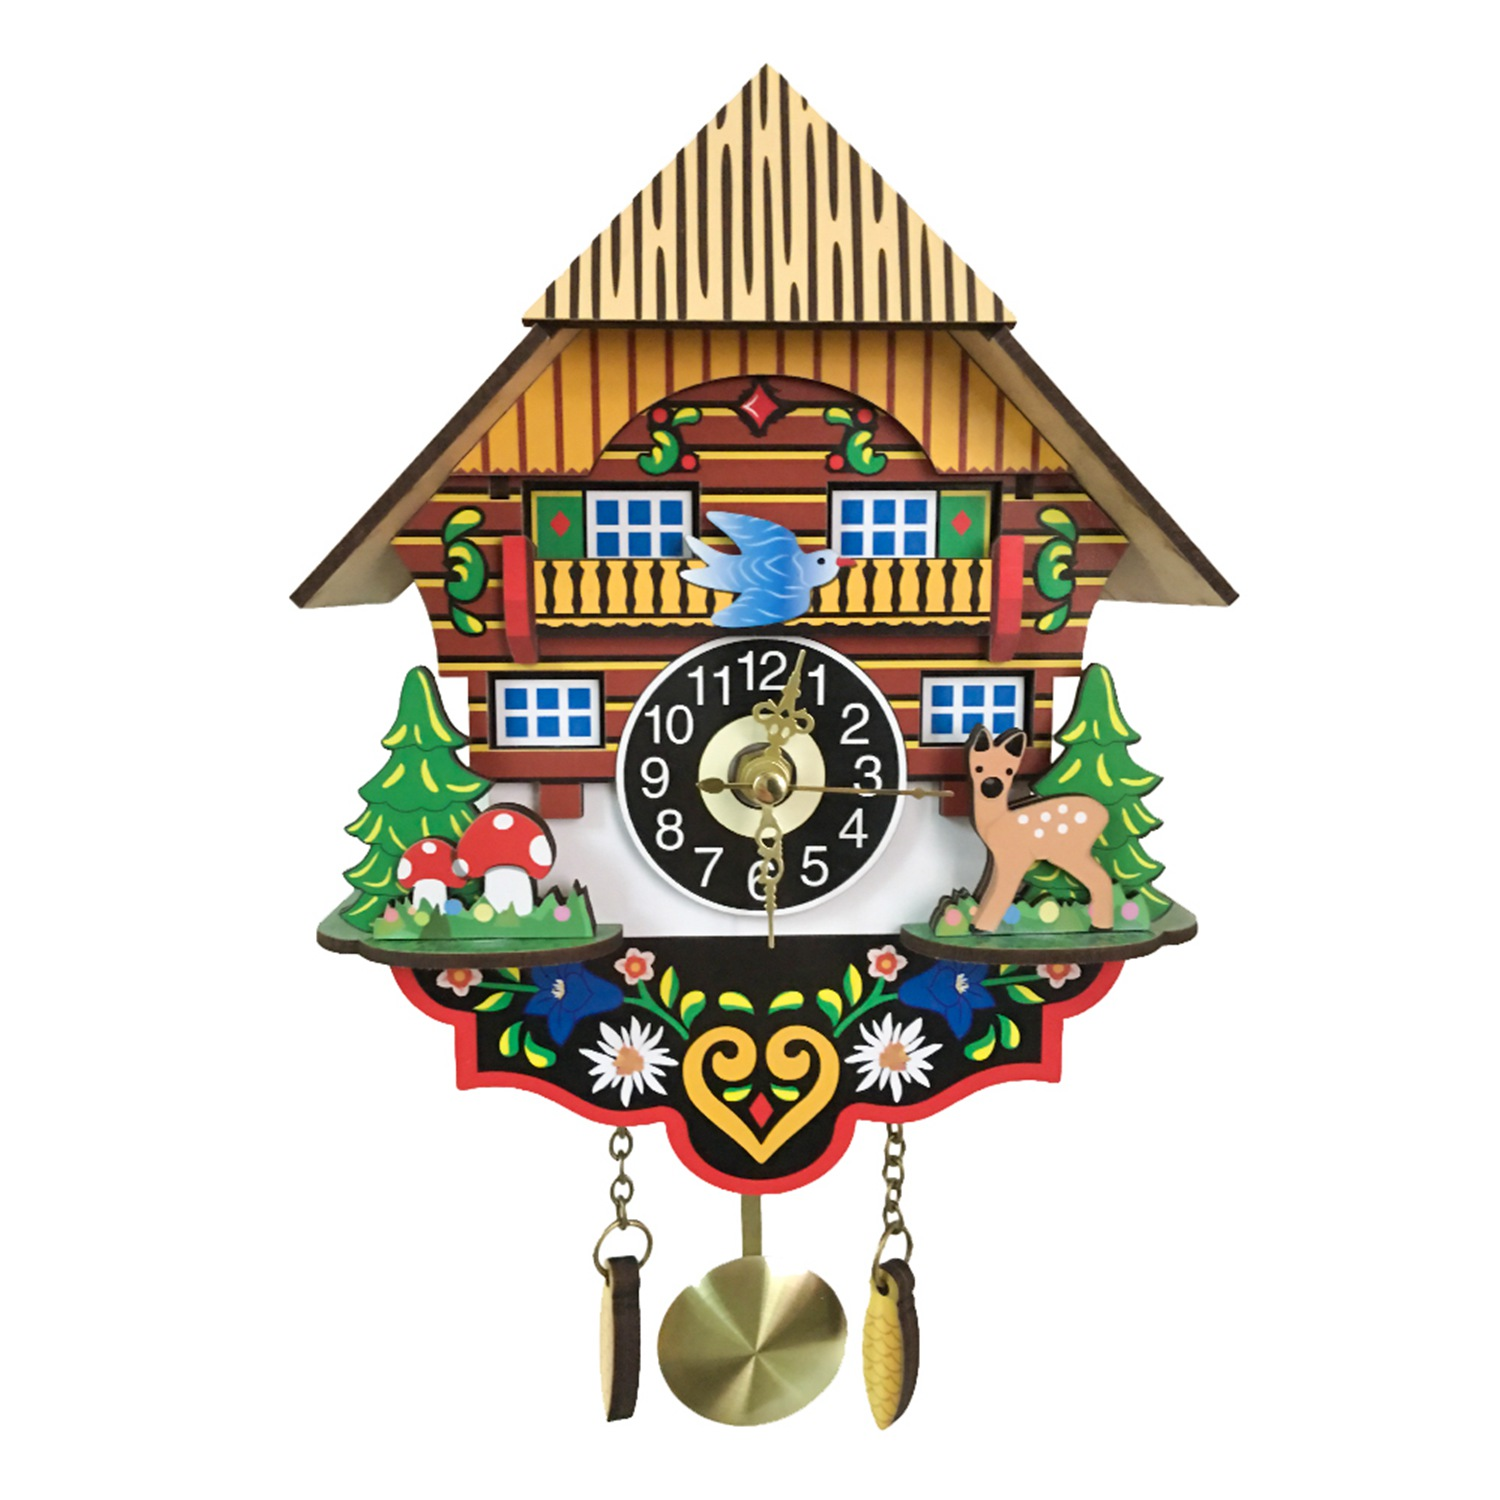 Hot Silent Cuckoo Wall Clock, Yellow European Style Living Room Vintage Wall Clock precise-in Wall Clocks from Home & Garden